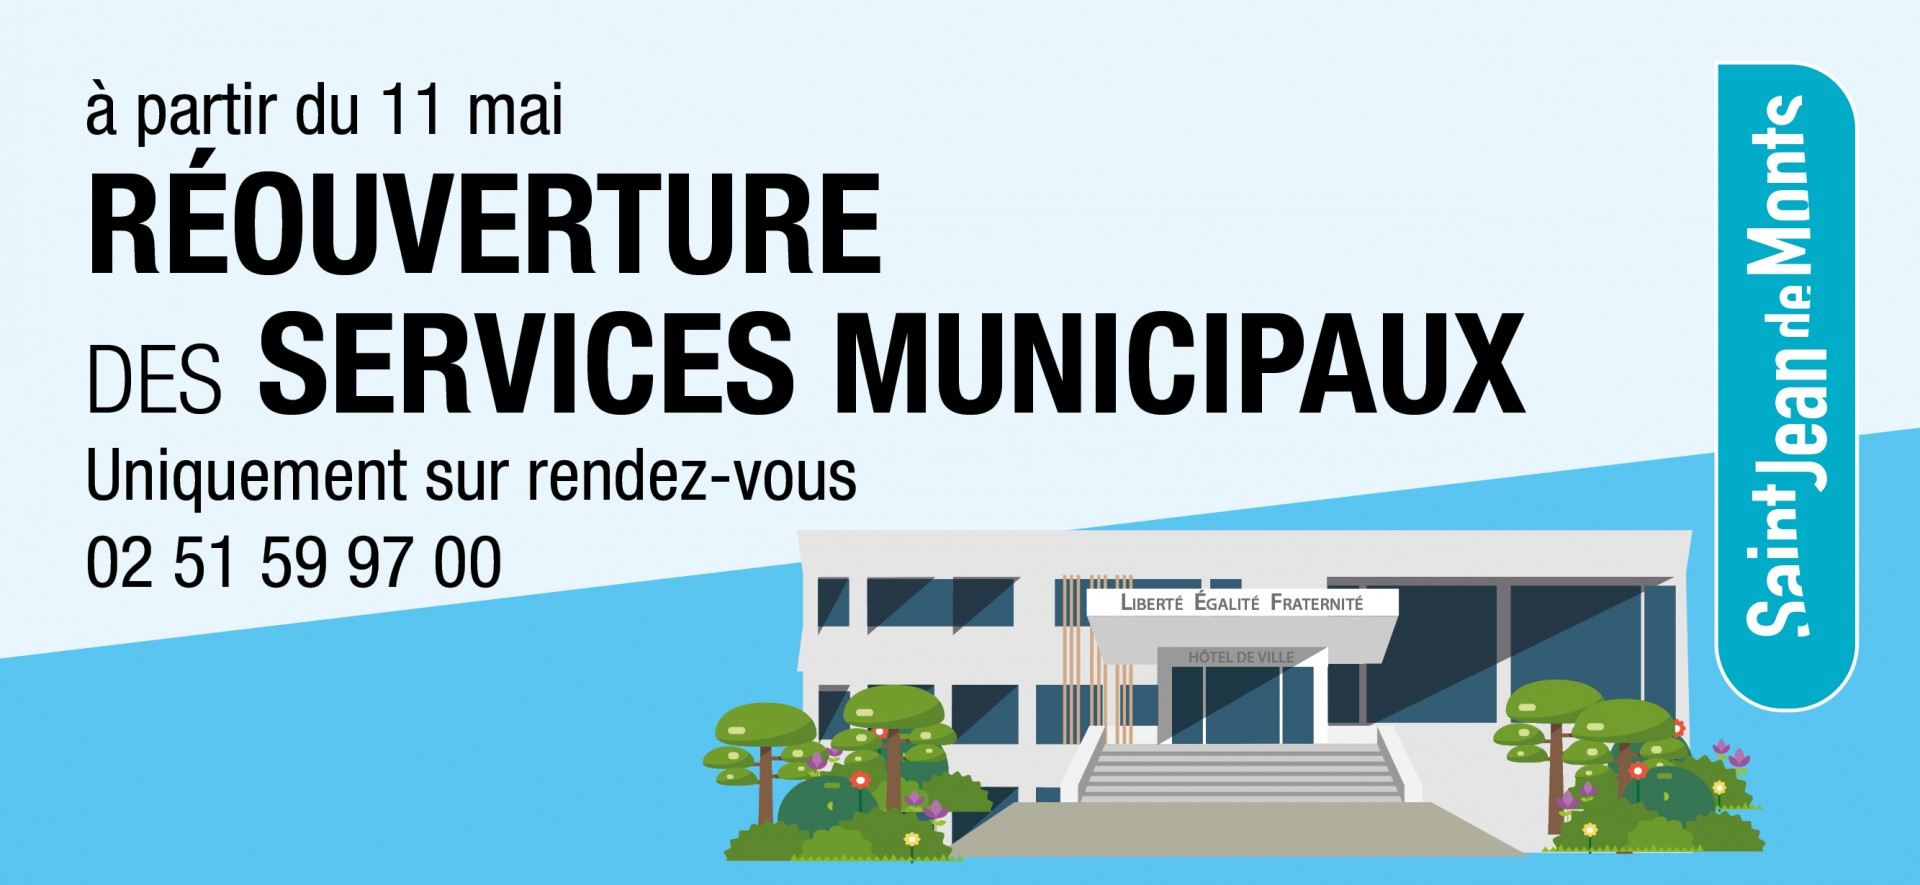 20200507-ouverture-services-actugrand-8433